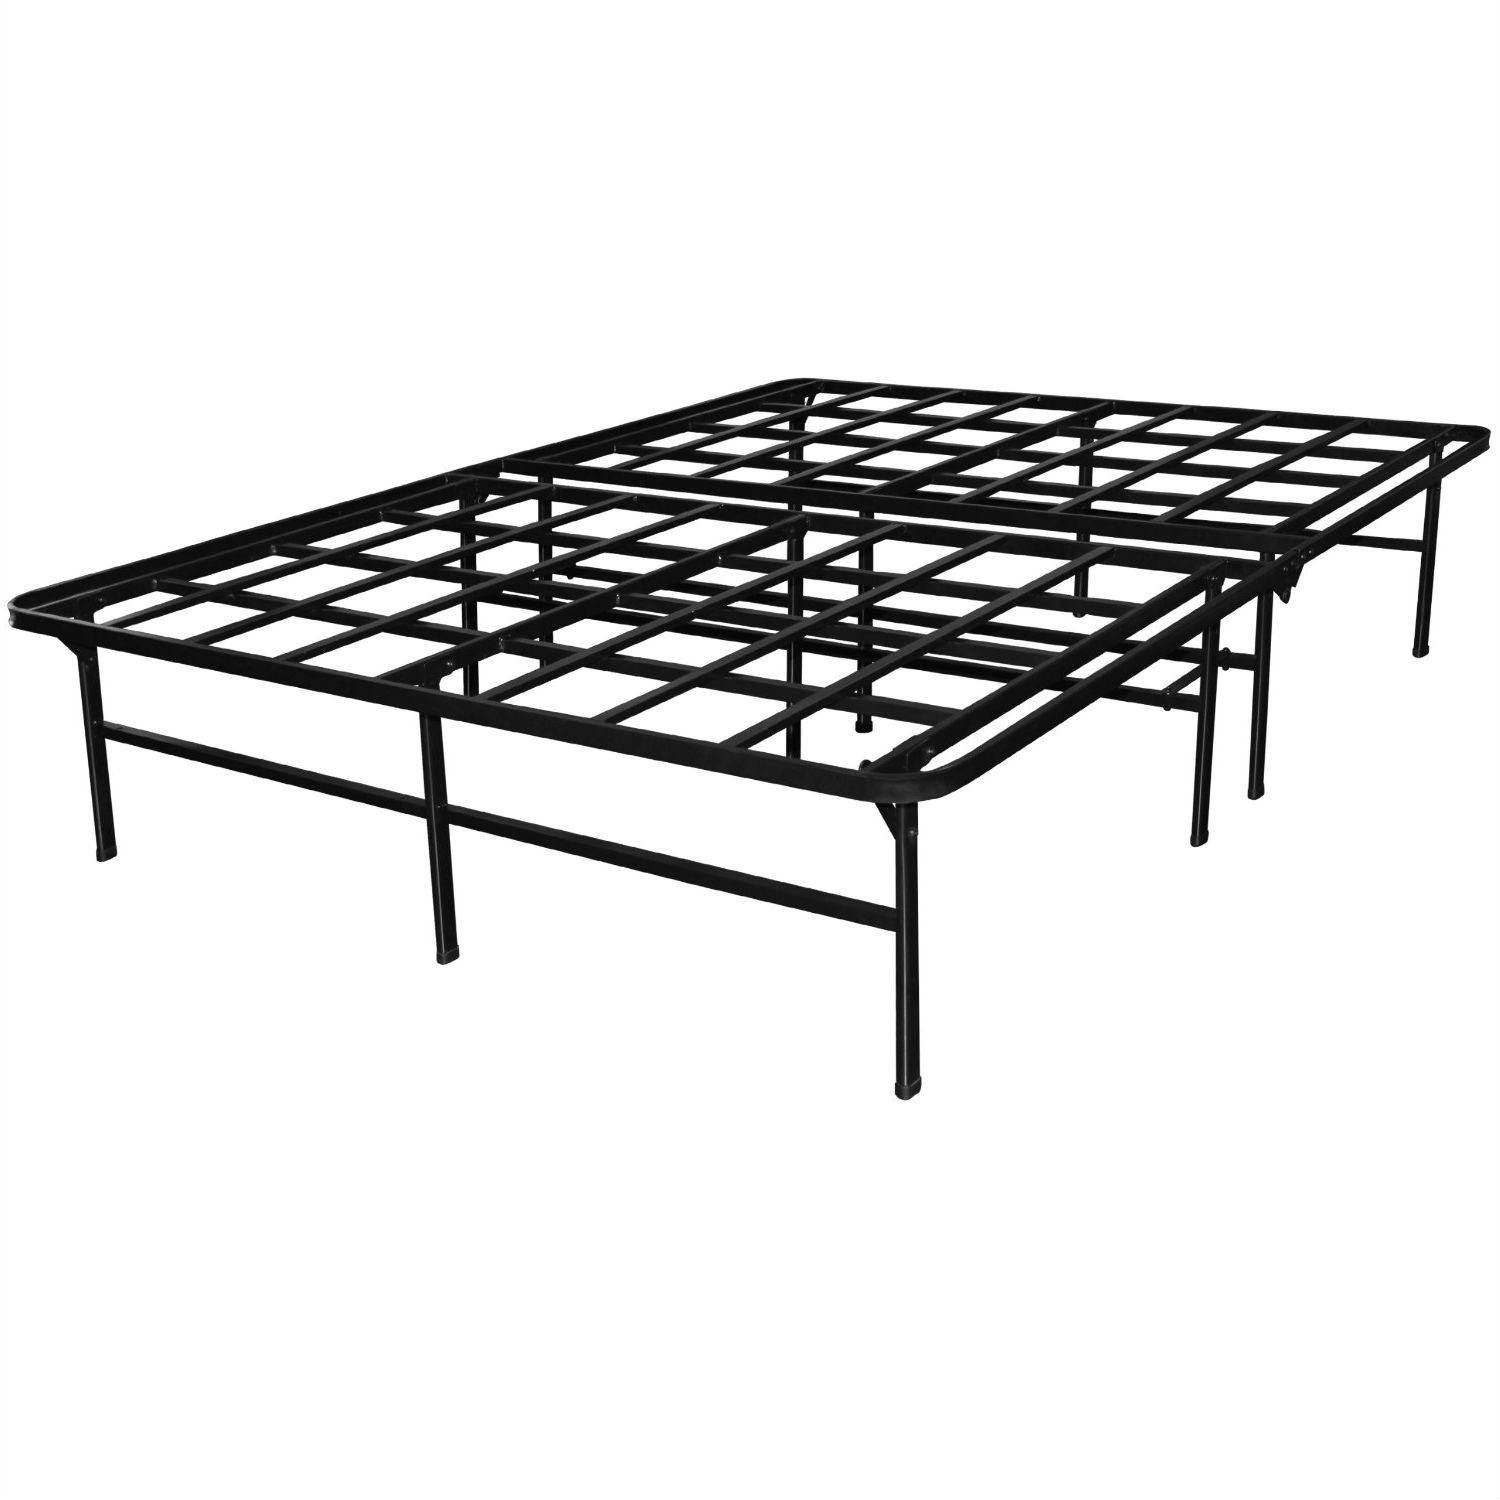 queen size heavy duty metal platform bed frame supports up to lbs